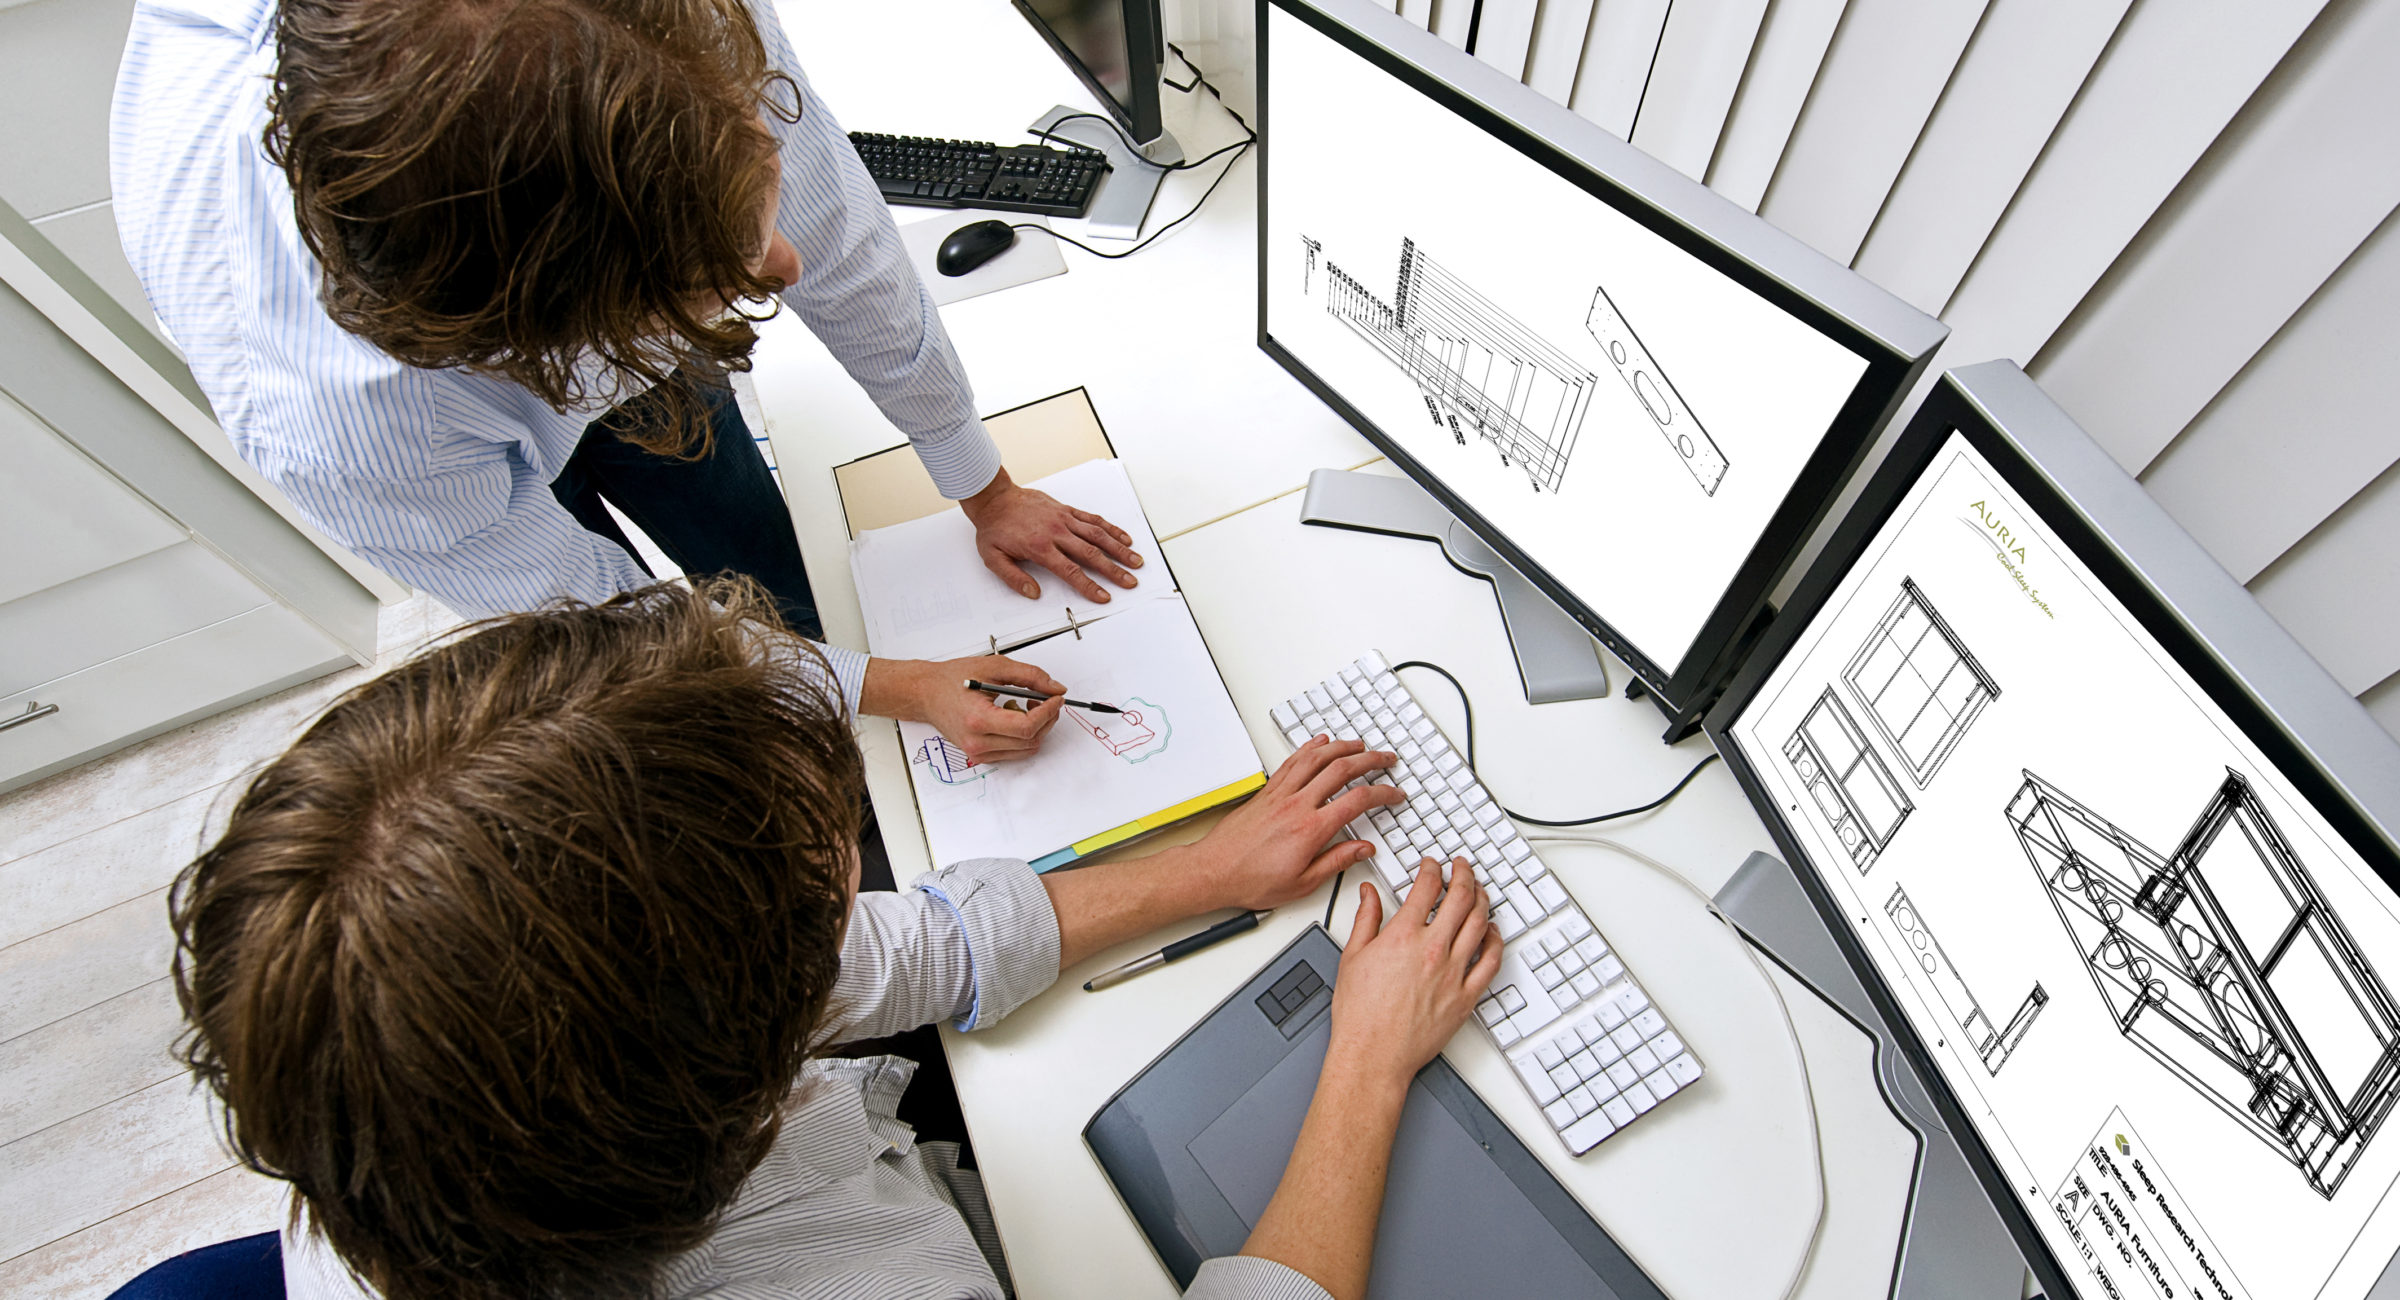 Two engineers, working together in an office, one explaining something to the other